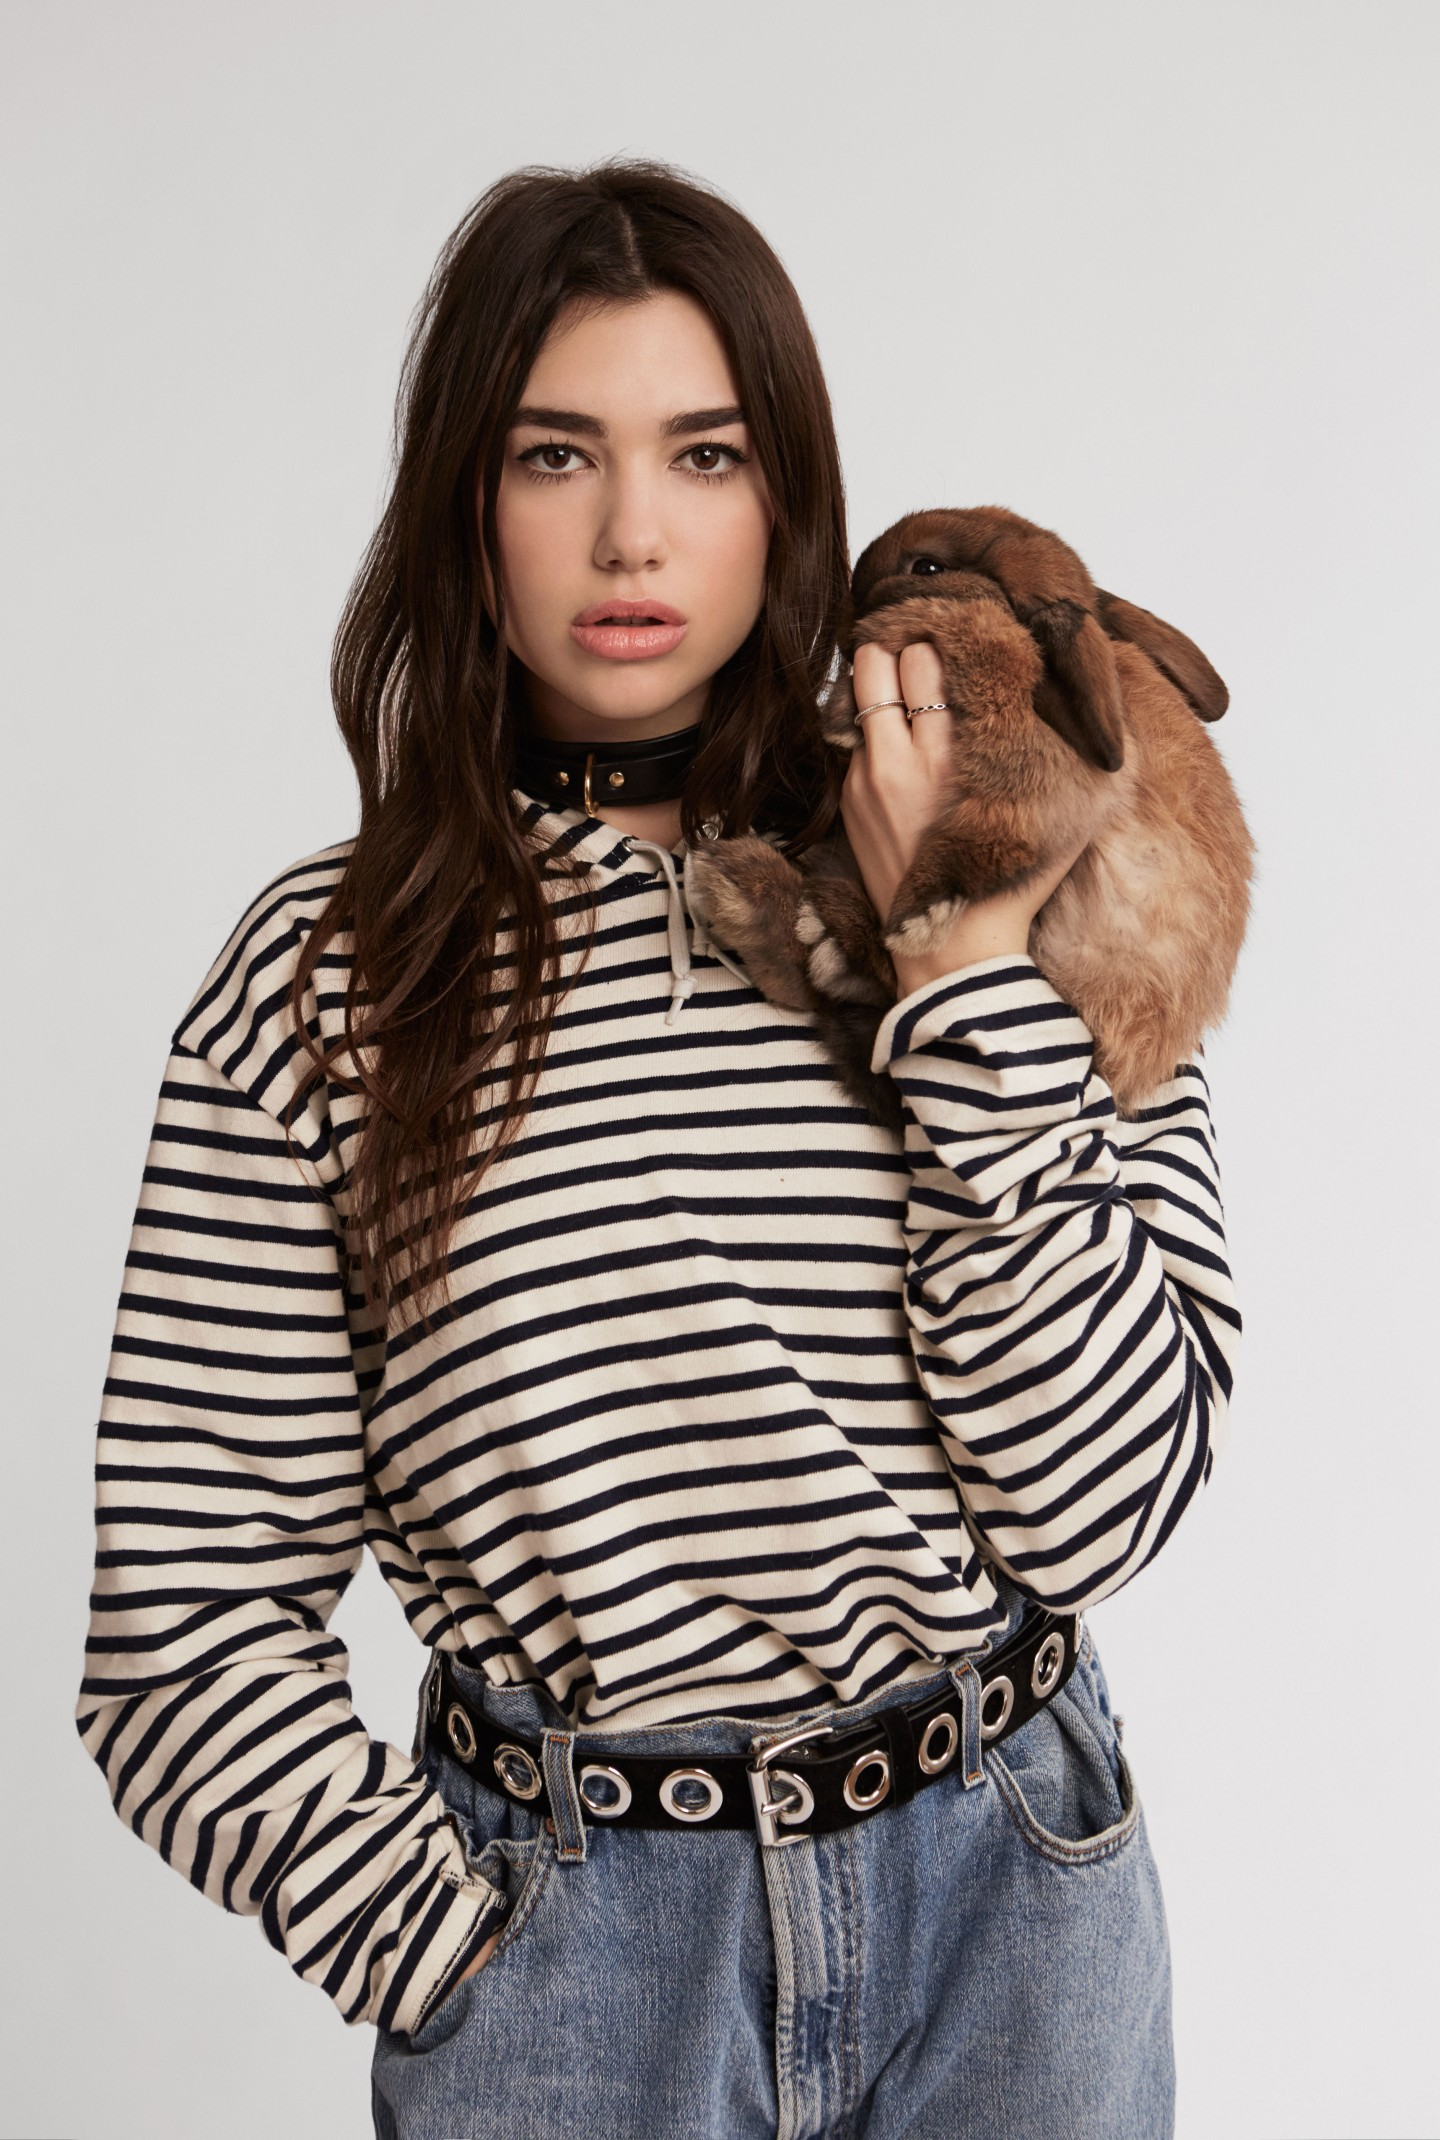 Dua Lipa Wants You To Know She's In Control